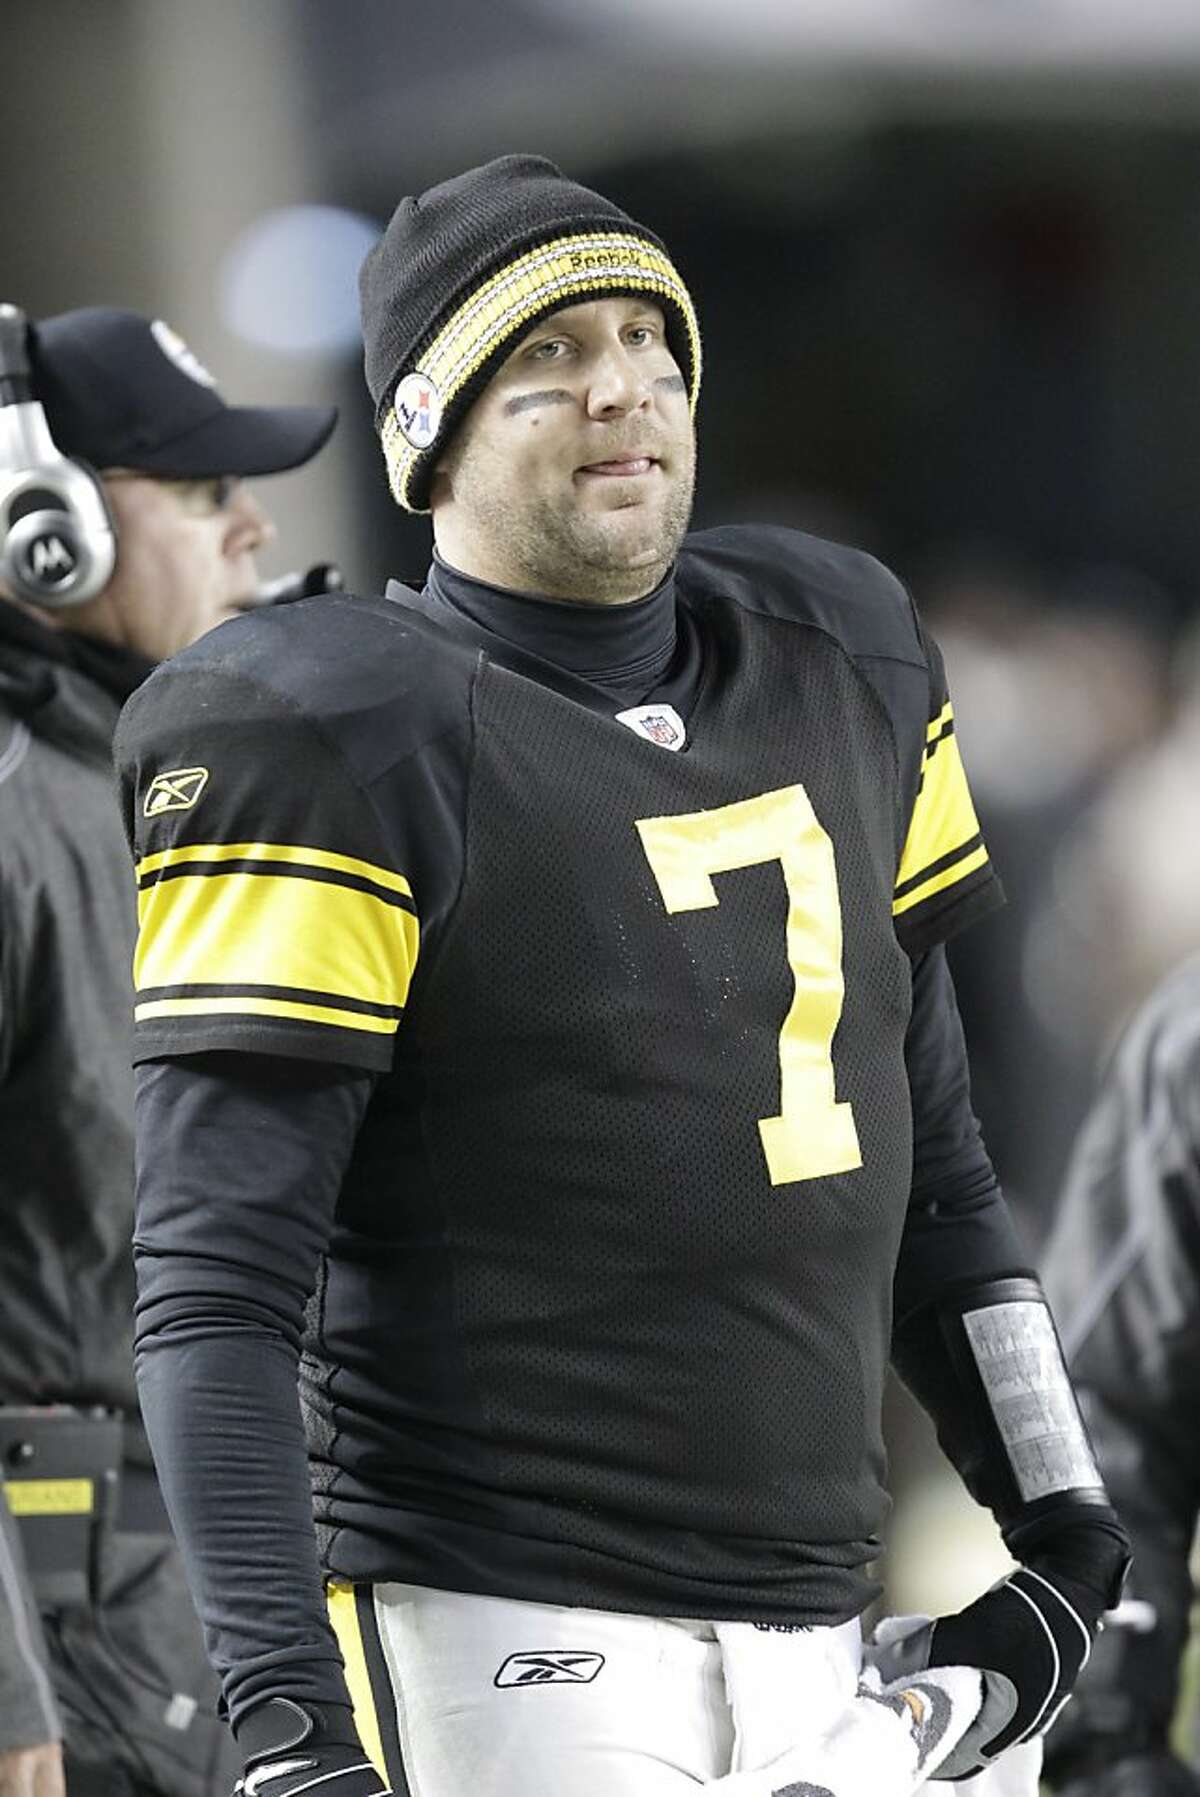 Pittsburgh Steelers quarterback Ben Roethlisberger (7) stands on the sidelines during the fourth quarter of an NFL football game against the Cleveland Browns in Pittsburgh, Thursday, Dec. 8, 2011. Roethlisberger injured his left ankle in the second quarter but remained in the game. The Steelers won 14-3. (AP Photo/Gene J. Puskar)